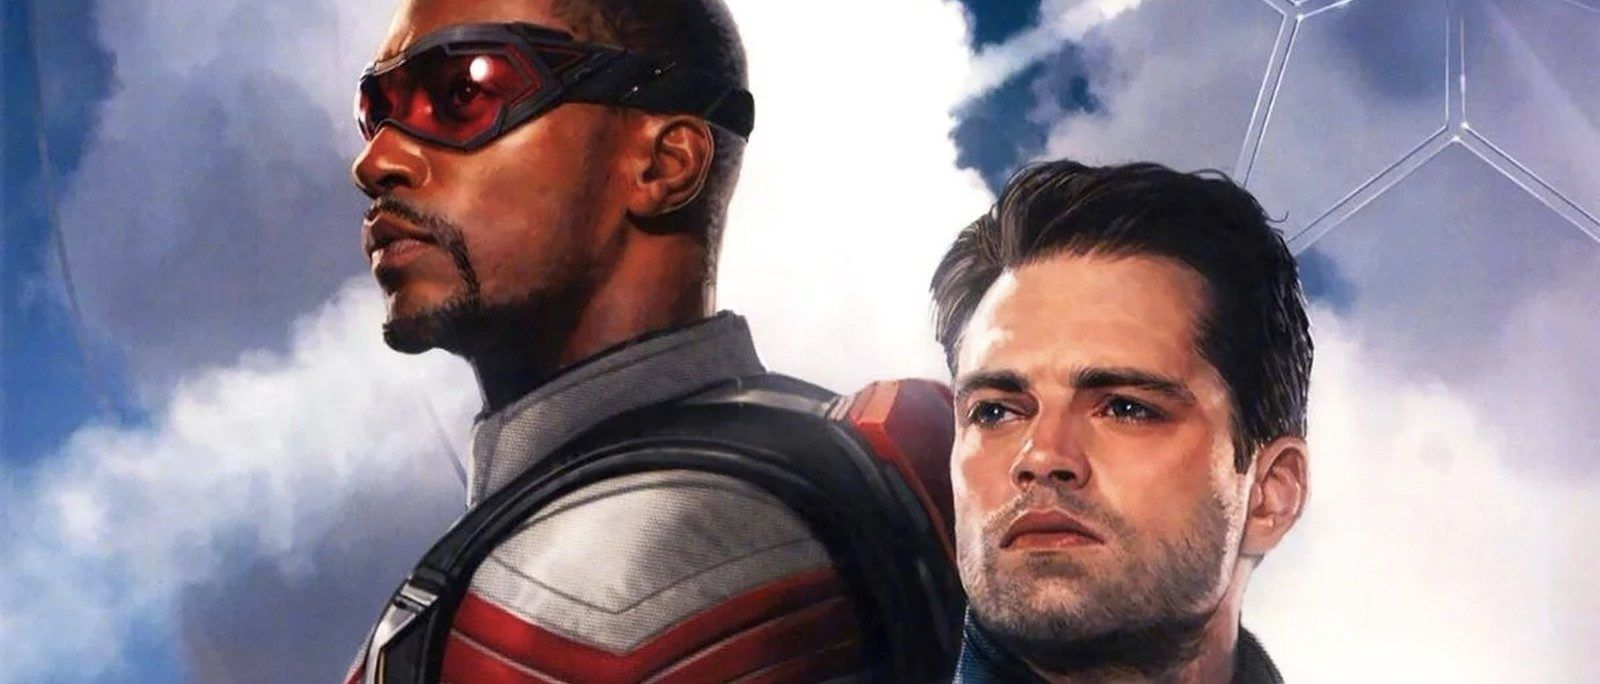 The Falcon And The Winter Soldier Everything We Know So Far Marvel Disney Plus